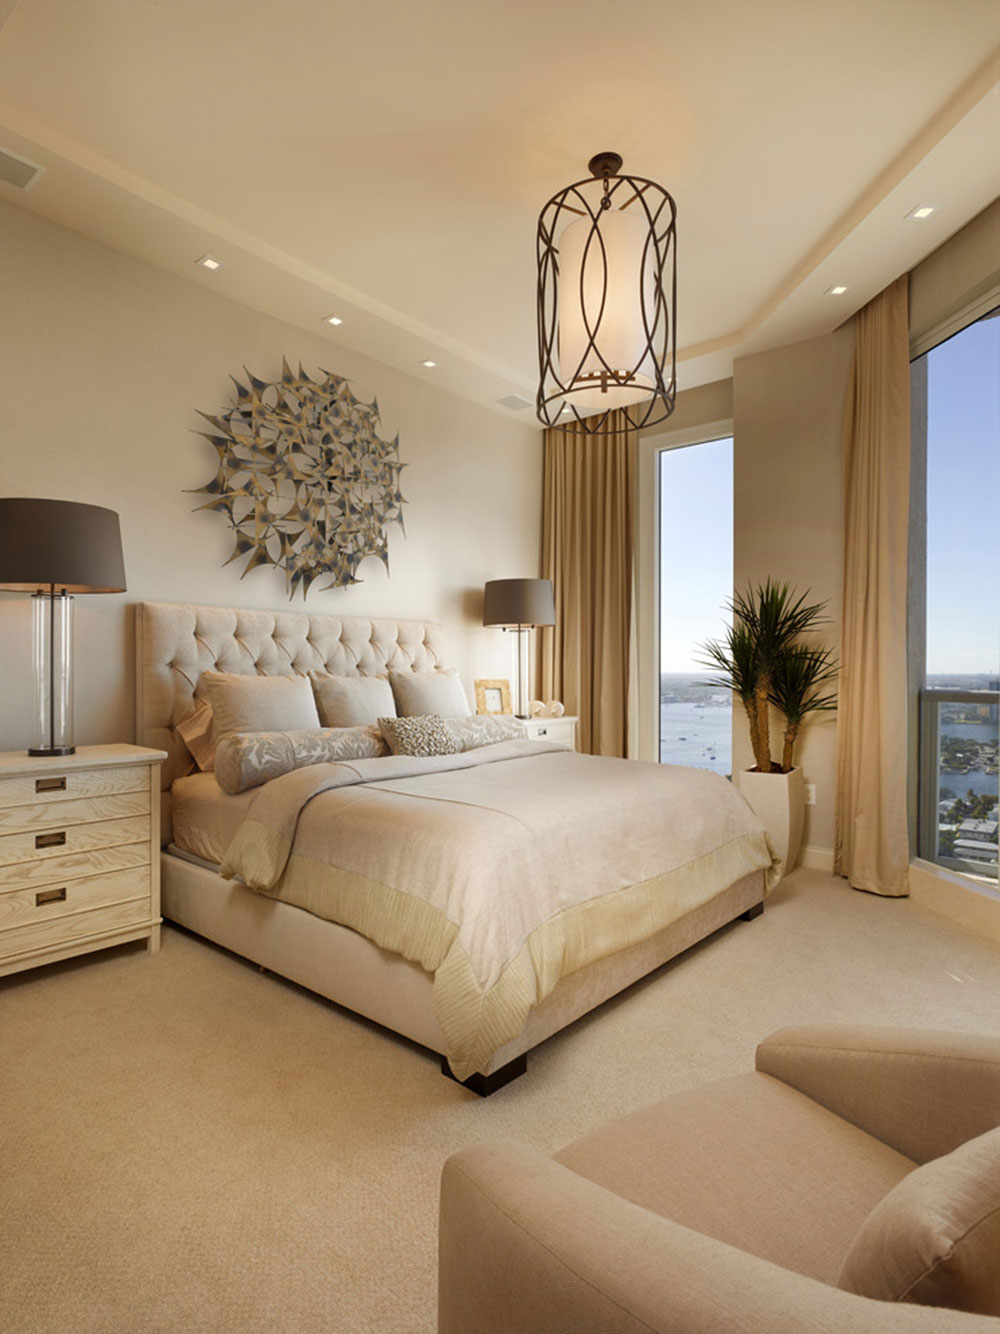 Sweet Dreams With These Beautiful Headboard Design Ideas4